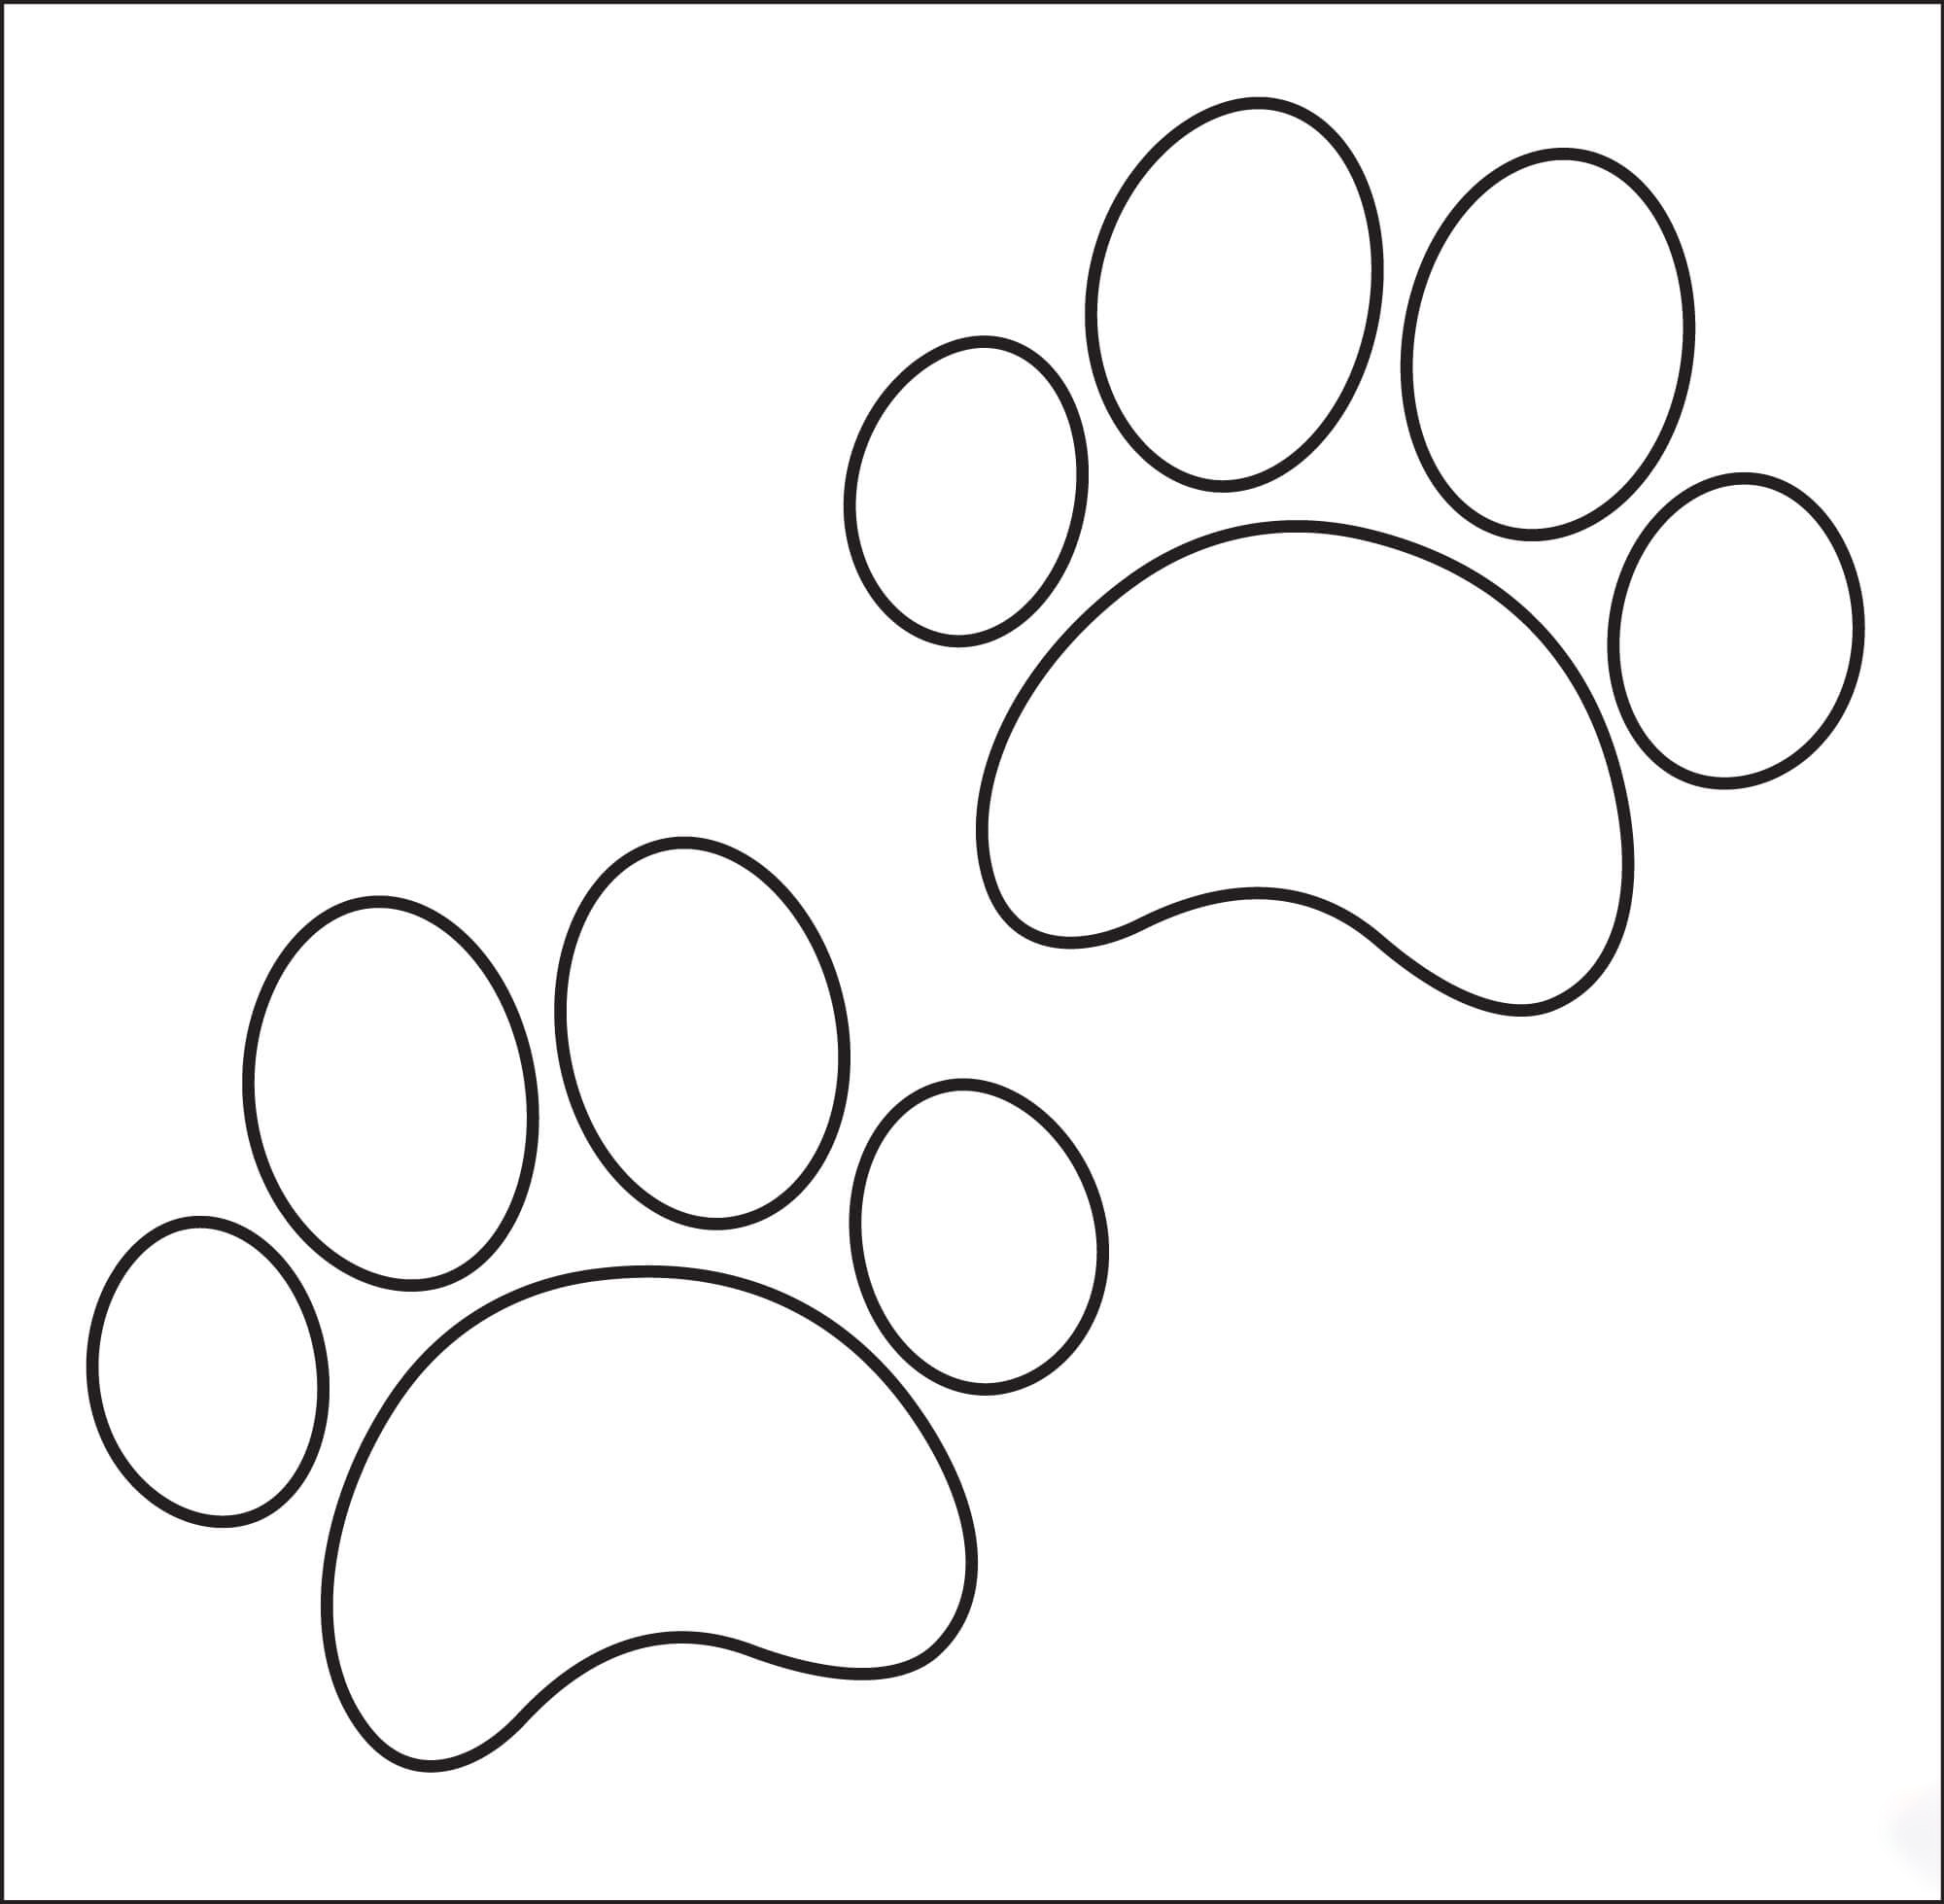 Dogpaw Coloring Page